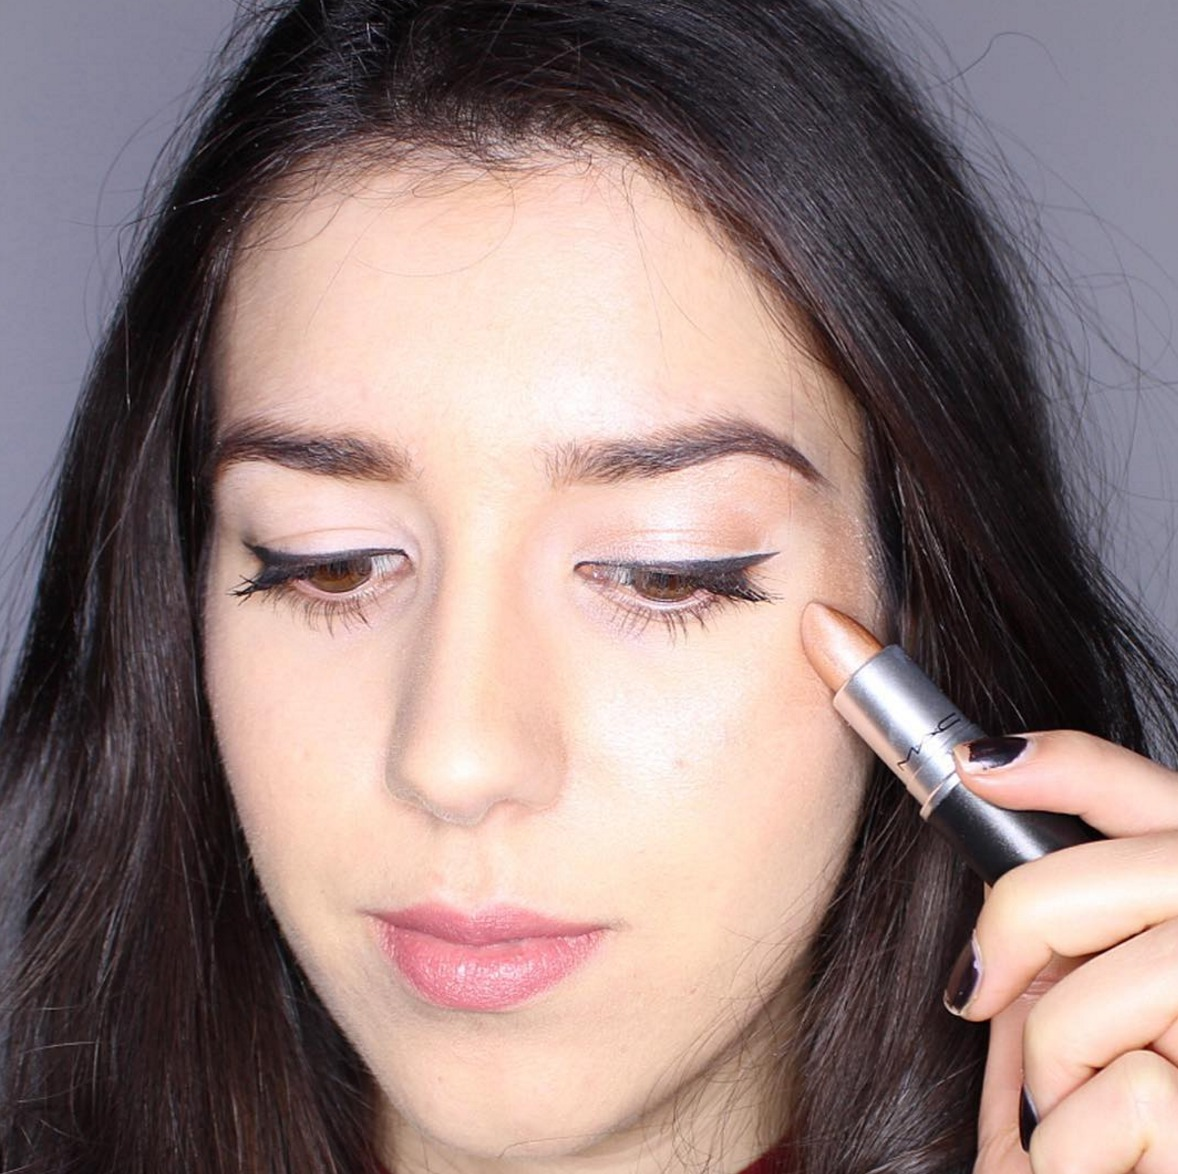 Chroming is a new beauty trend and it involves lipstick all over your face